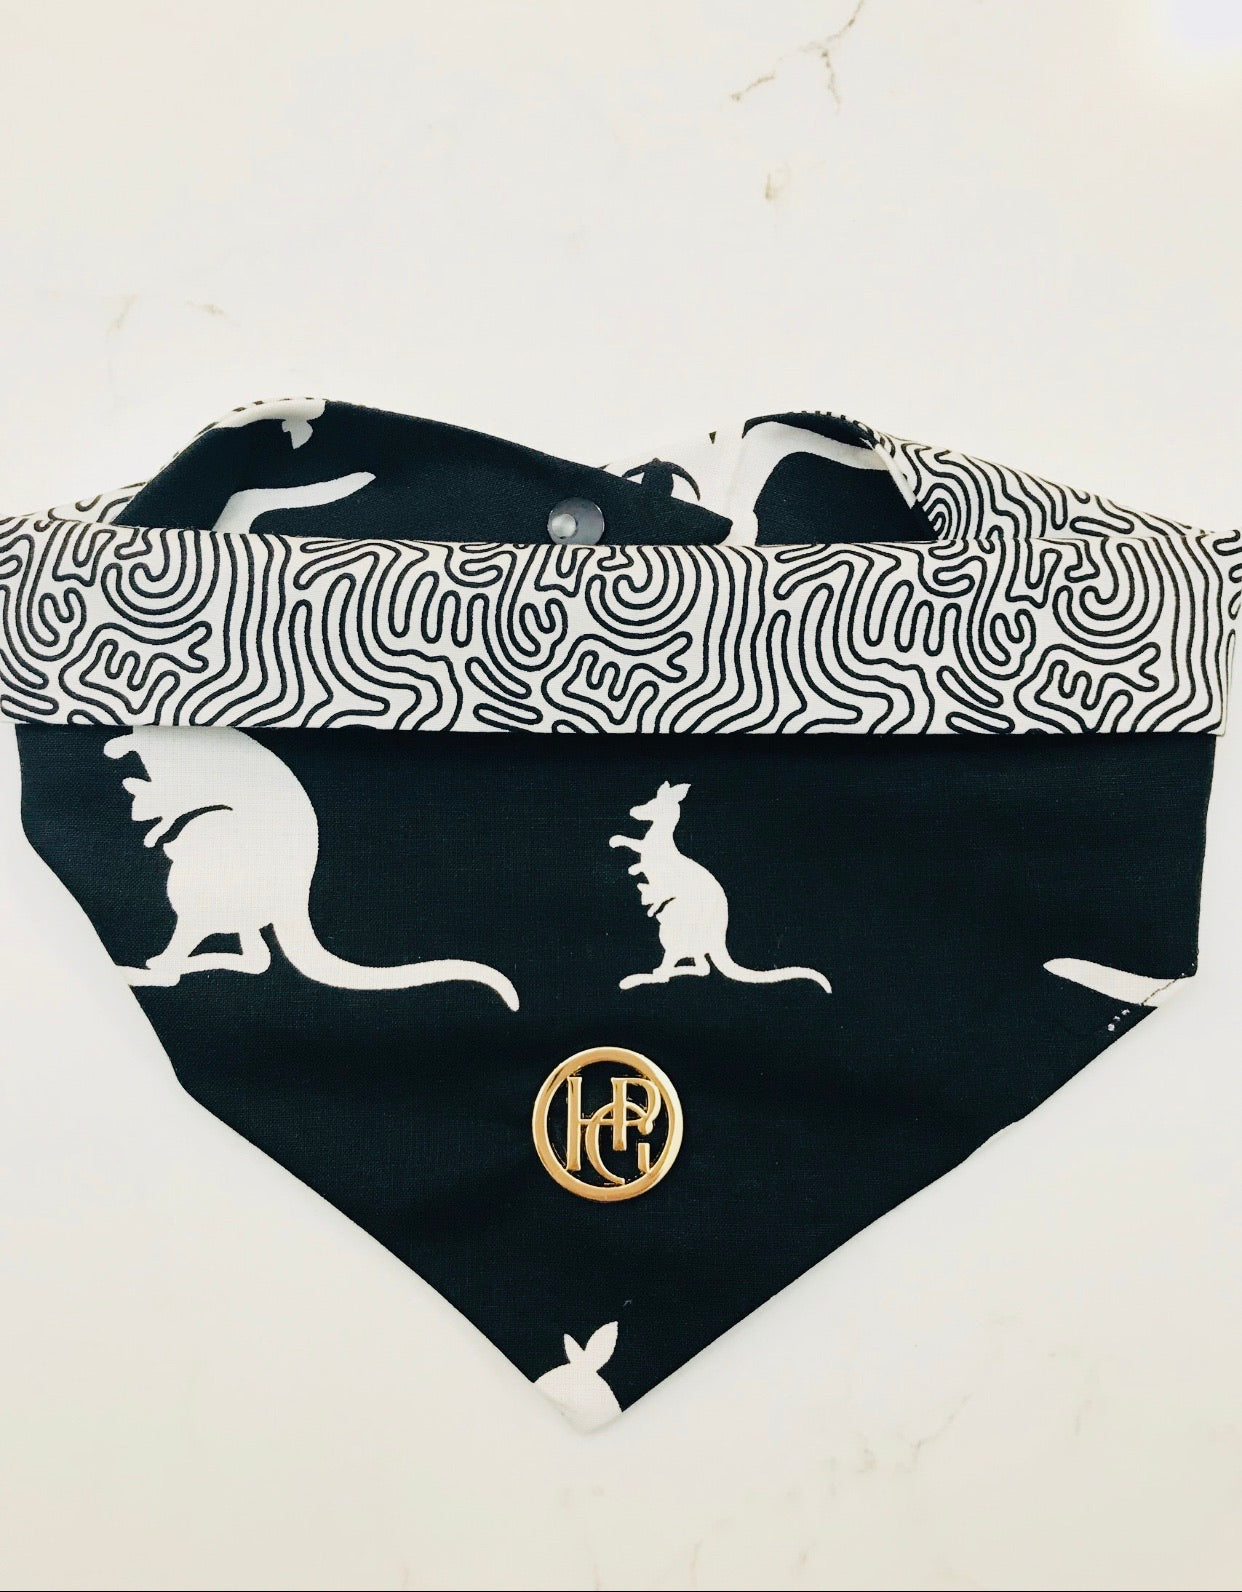 The 'Roo' Scarf